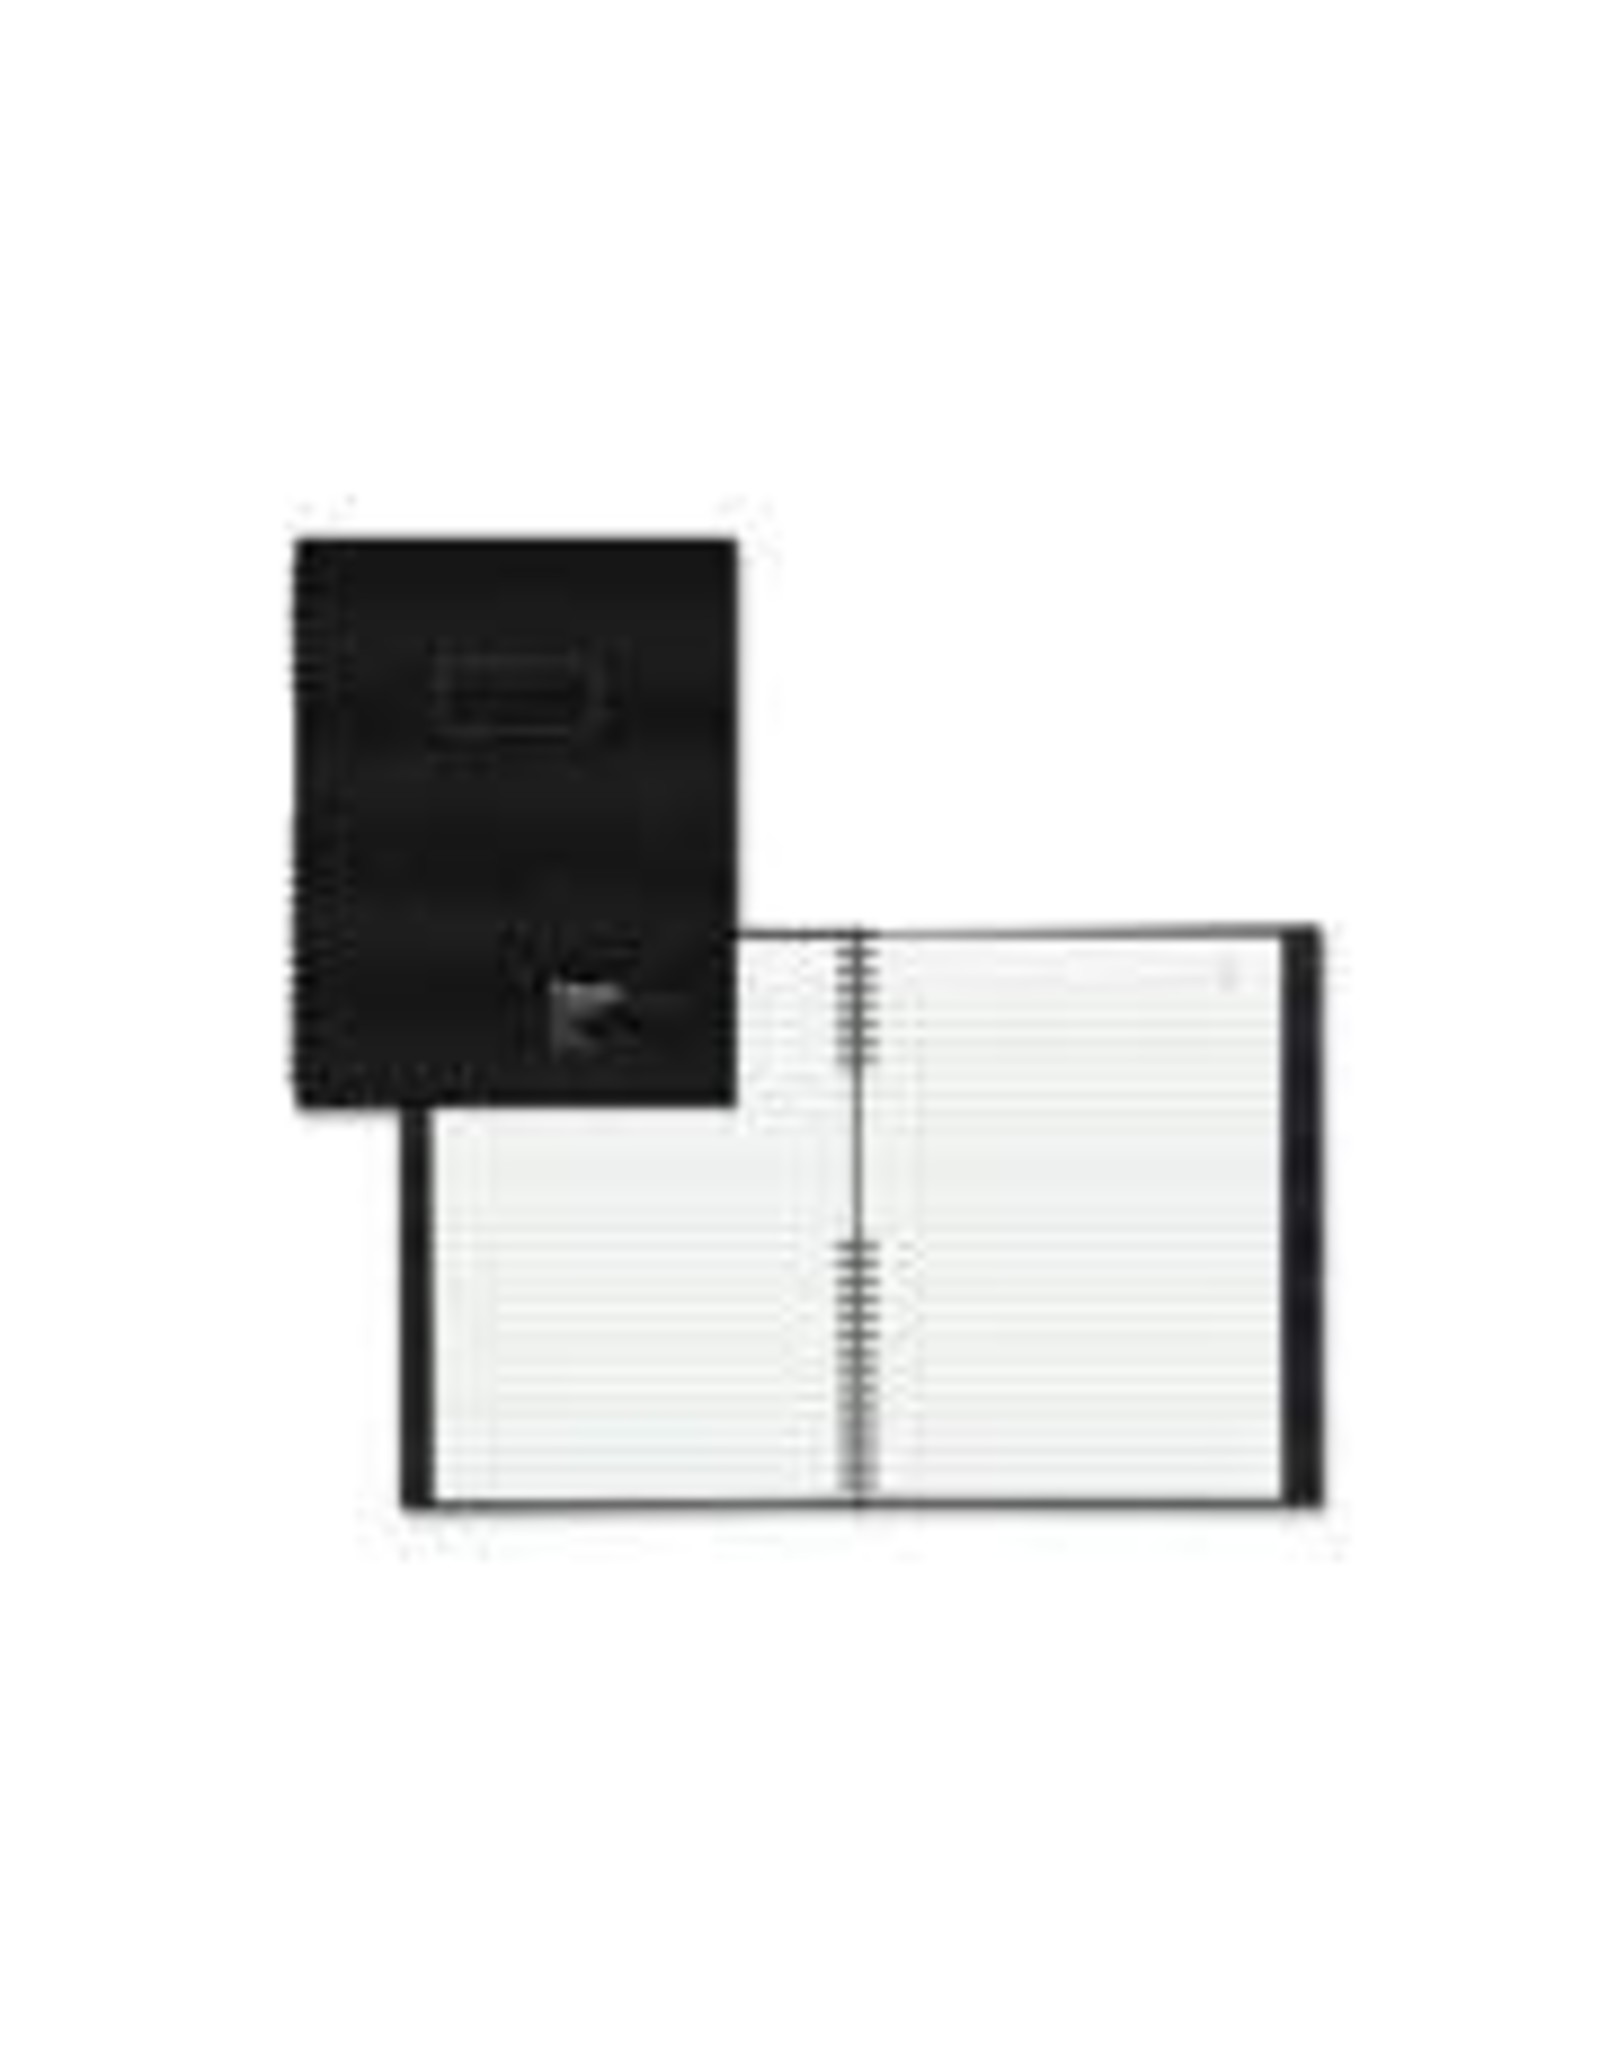 Blueline ACCOUNT BOOK-COILPRO, 200 PAGE WHITE 10.25X7-11/16 RECORD